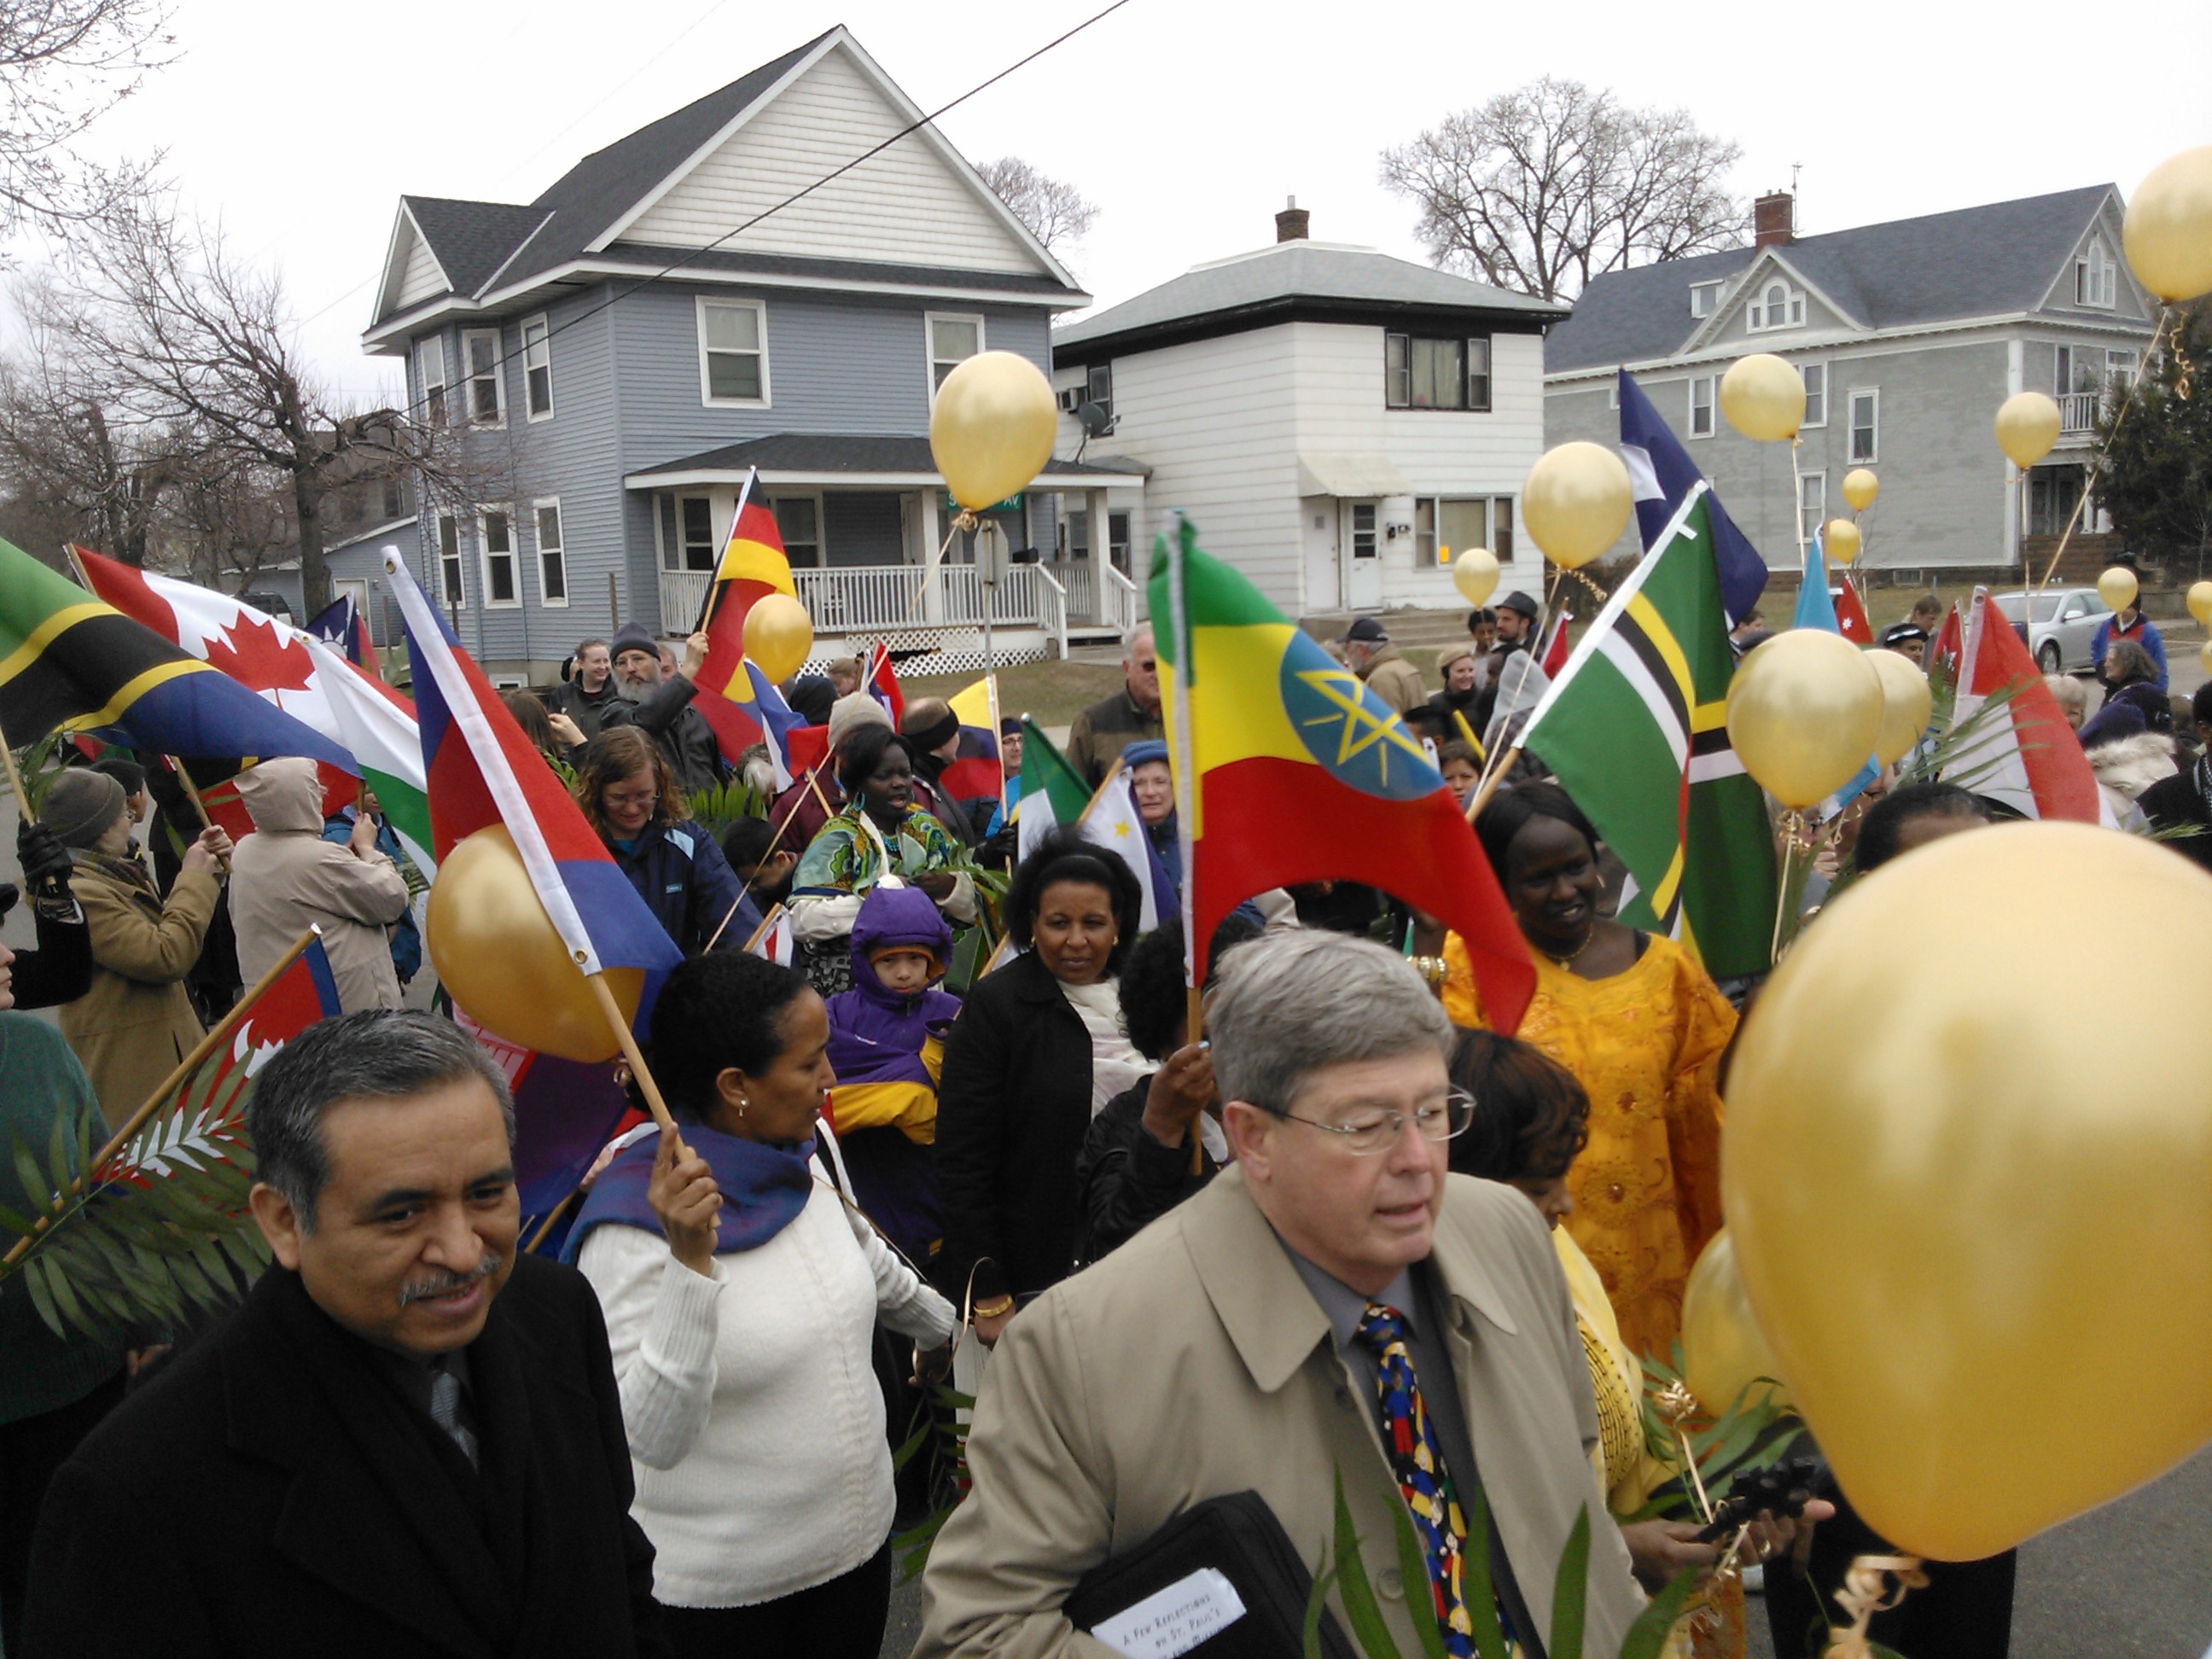 Reverend Roland Wells (Center) helps to lead the colorful march.